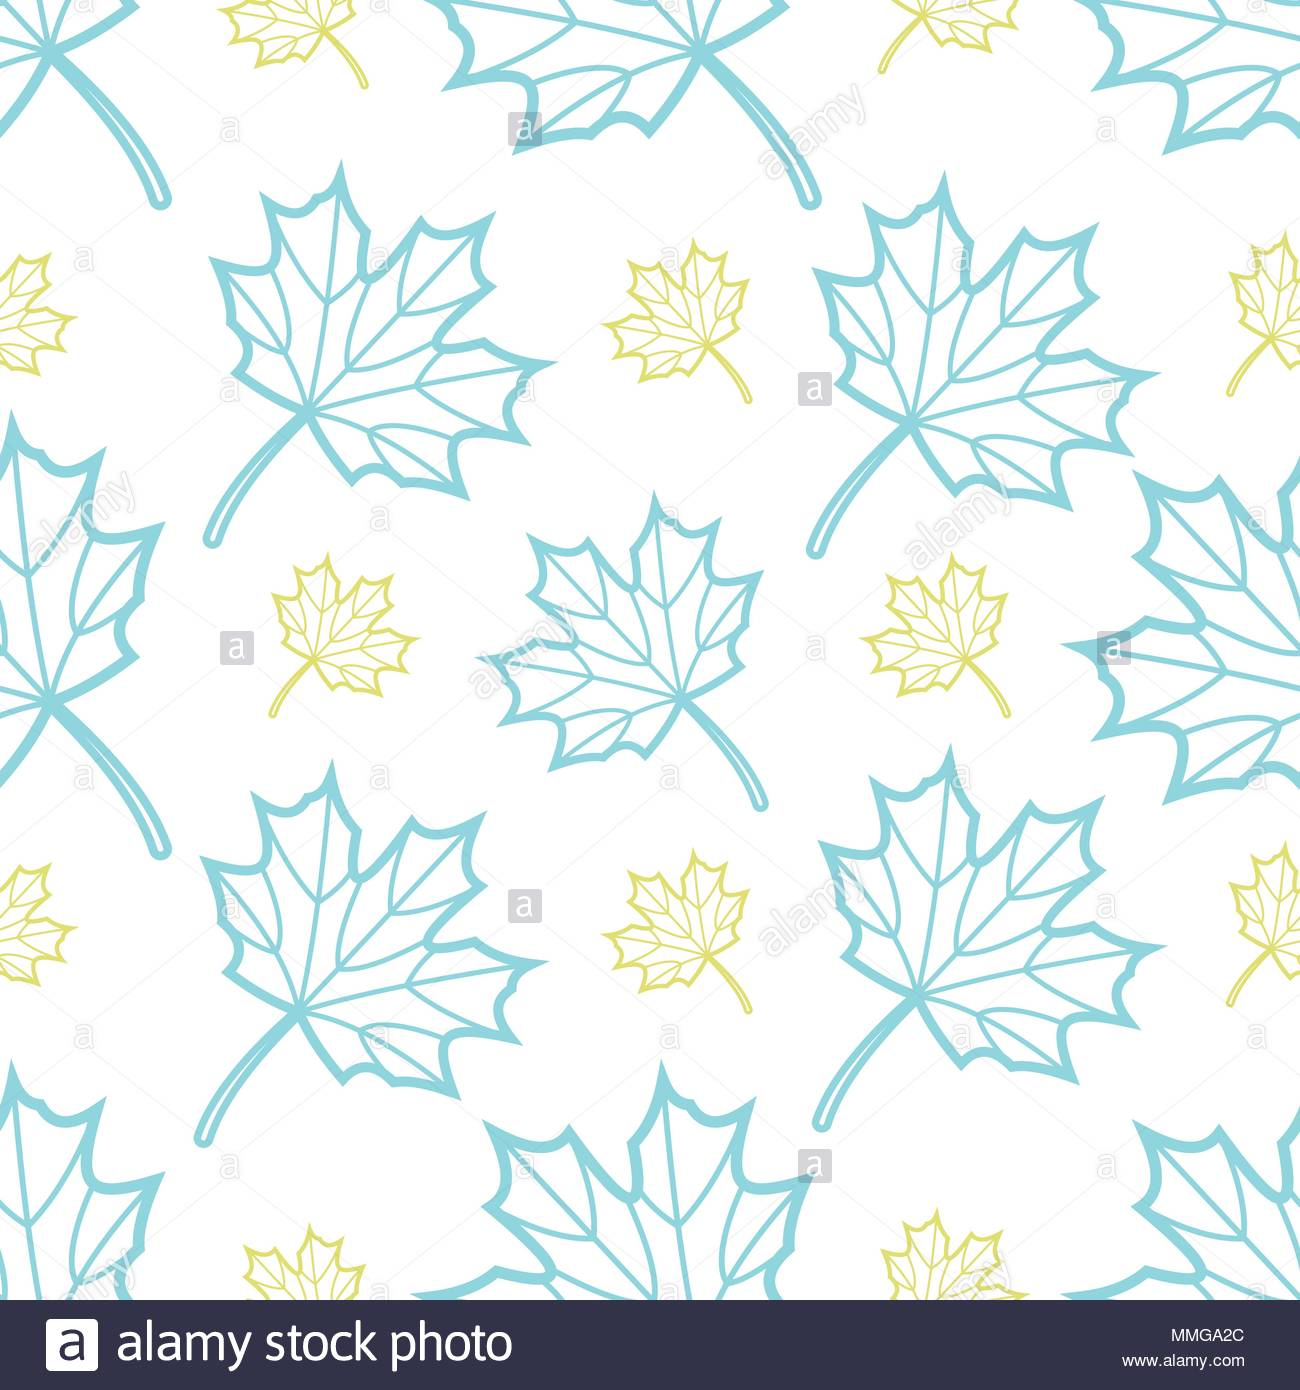 Cute blue and gold outline maple leaves random on white background 1300x1390